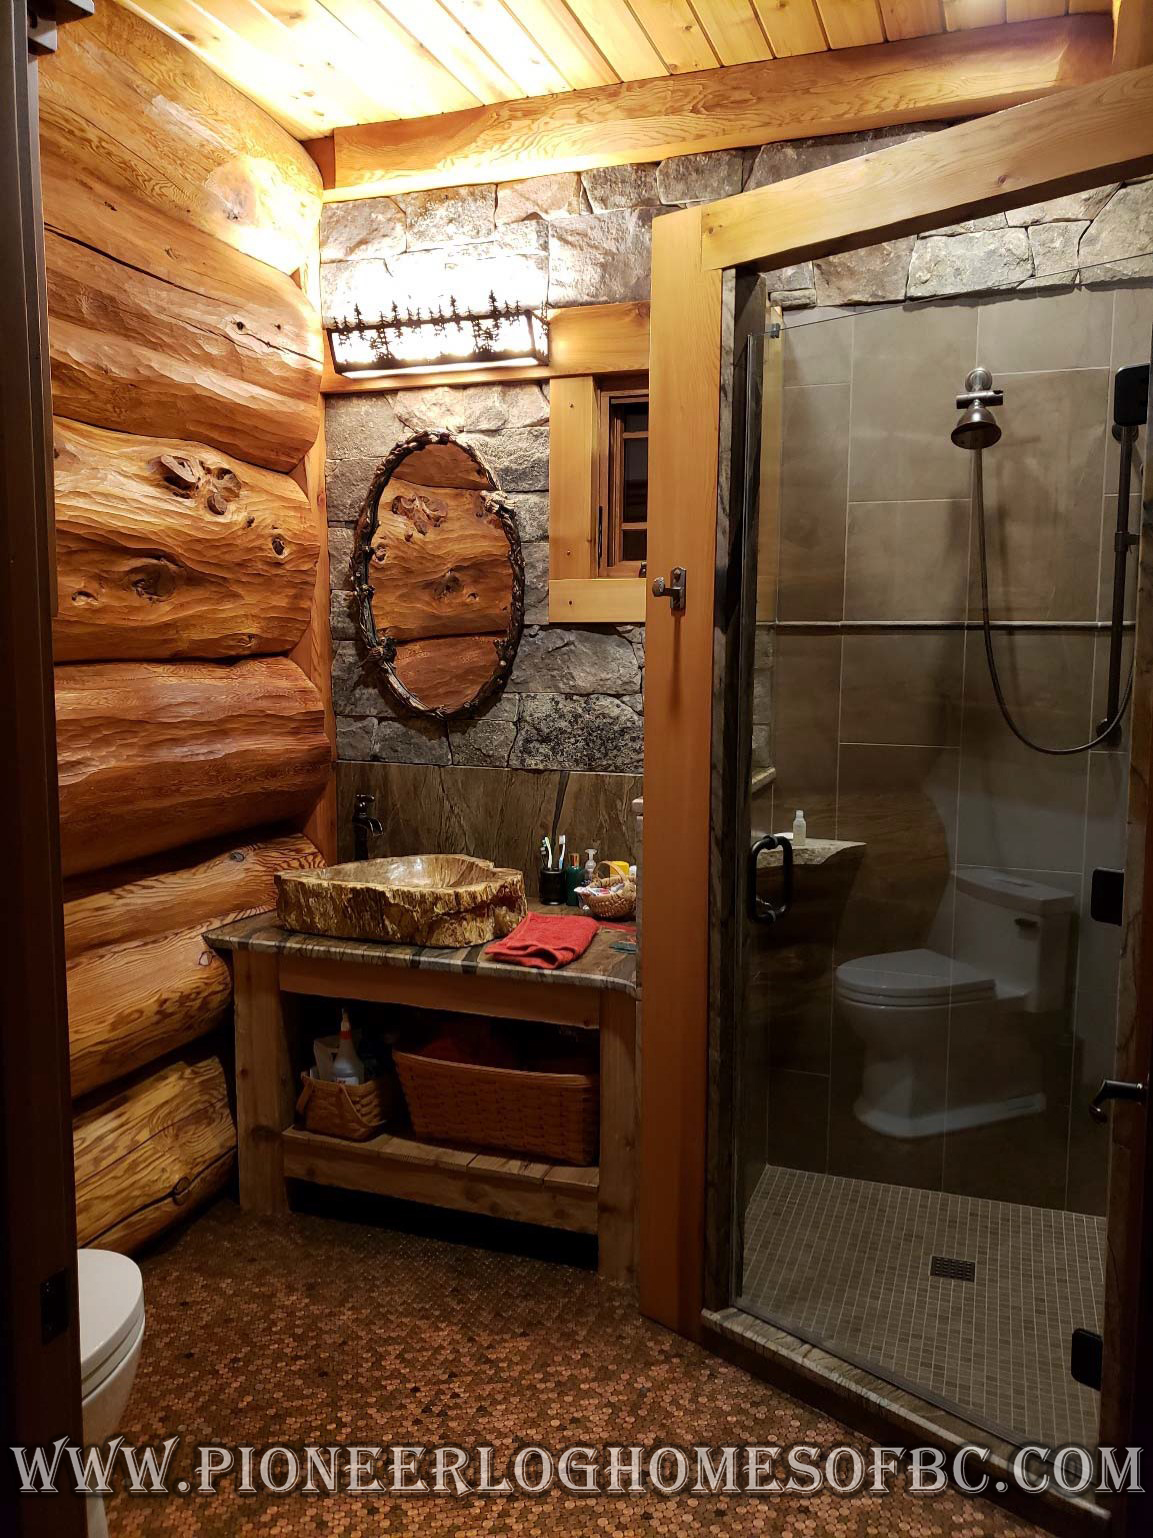 Bedrooms And Bathrooms Log Home Cabin Interiors Pioneer Homes Of Bc